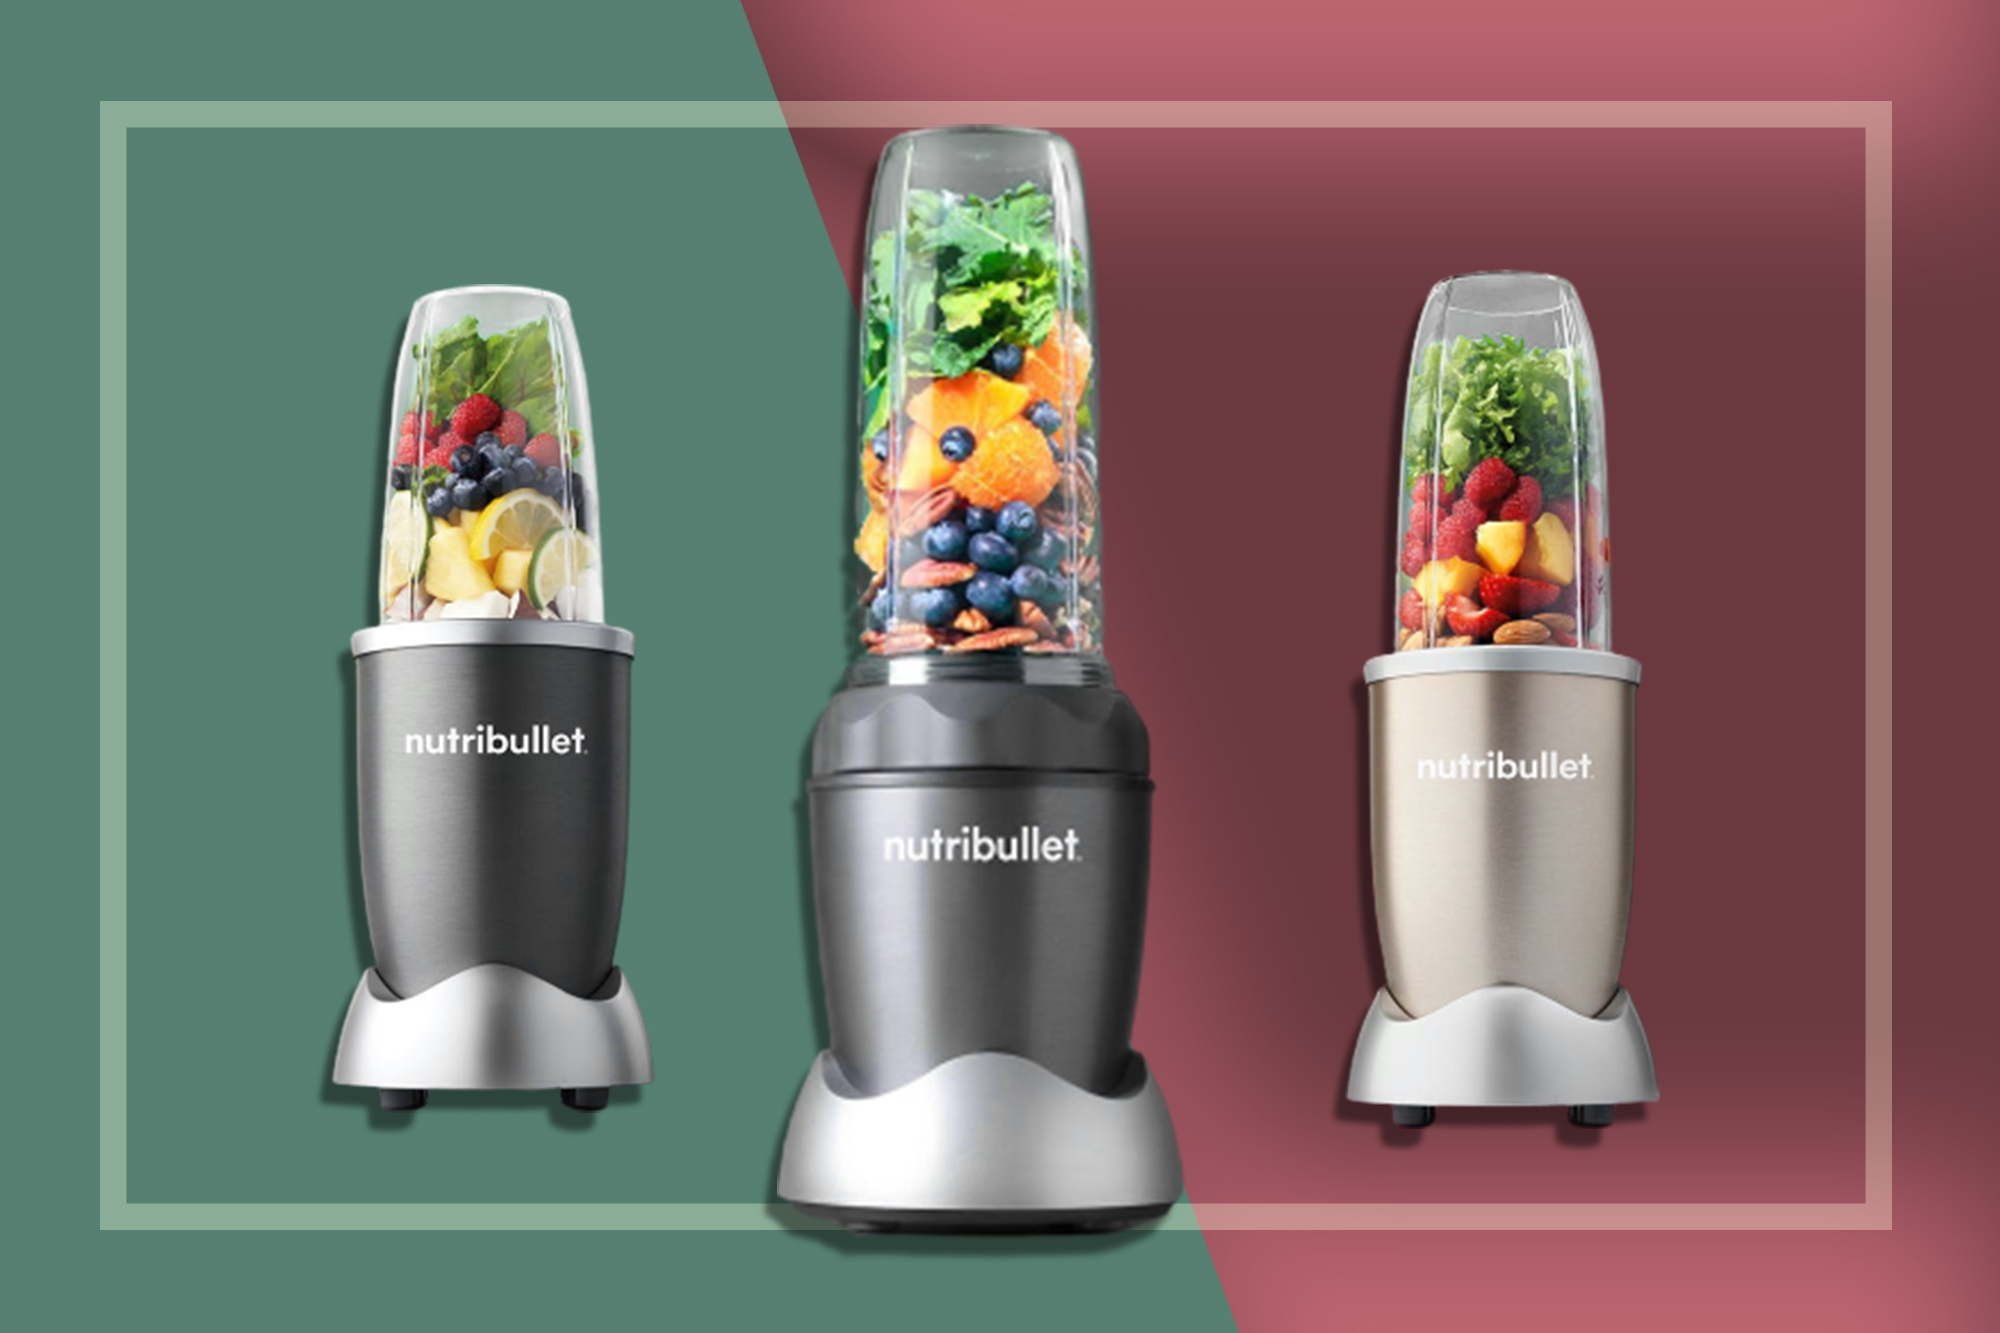 nutribullet black friday deals